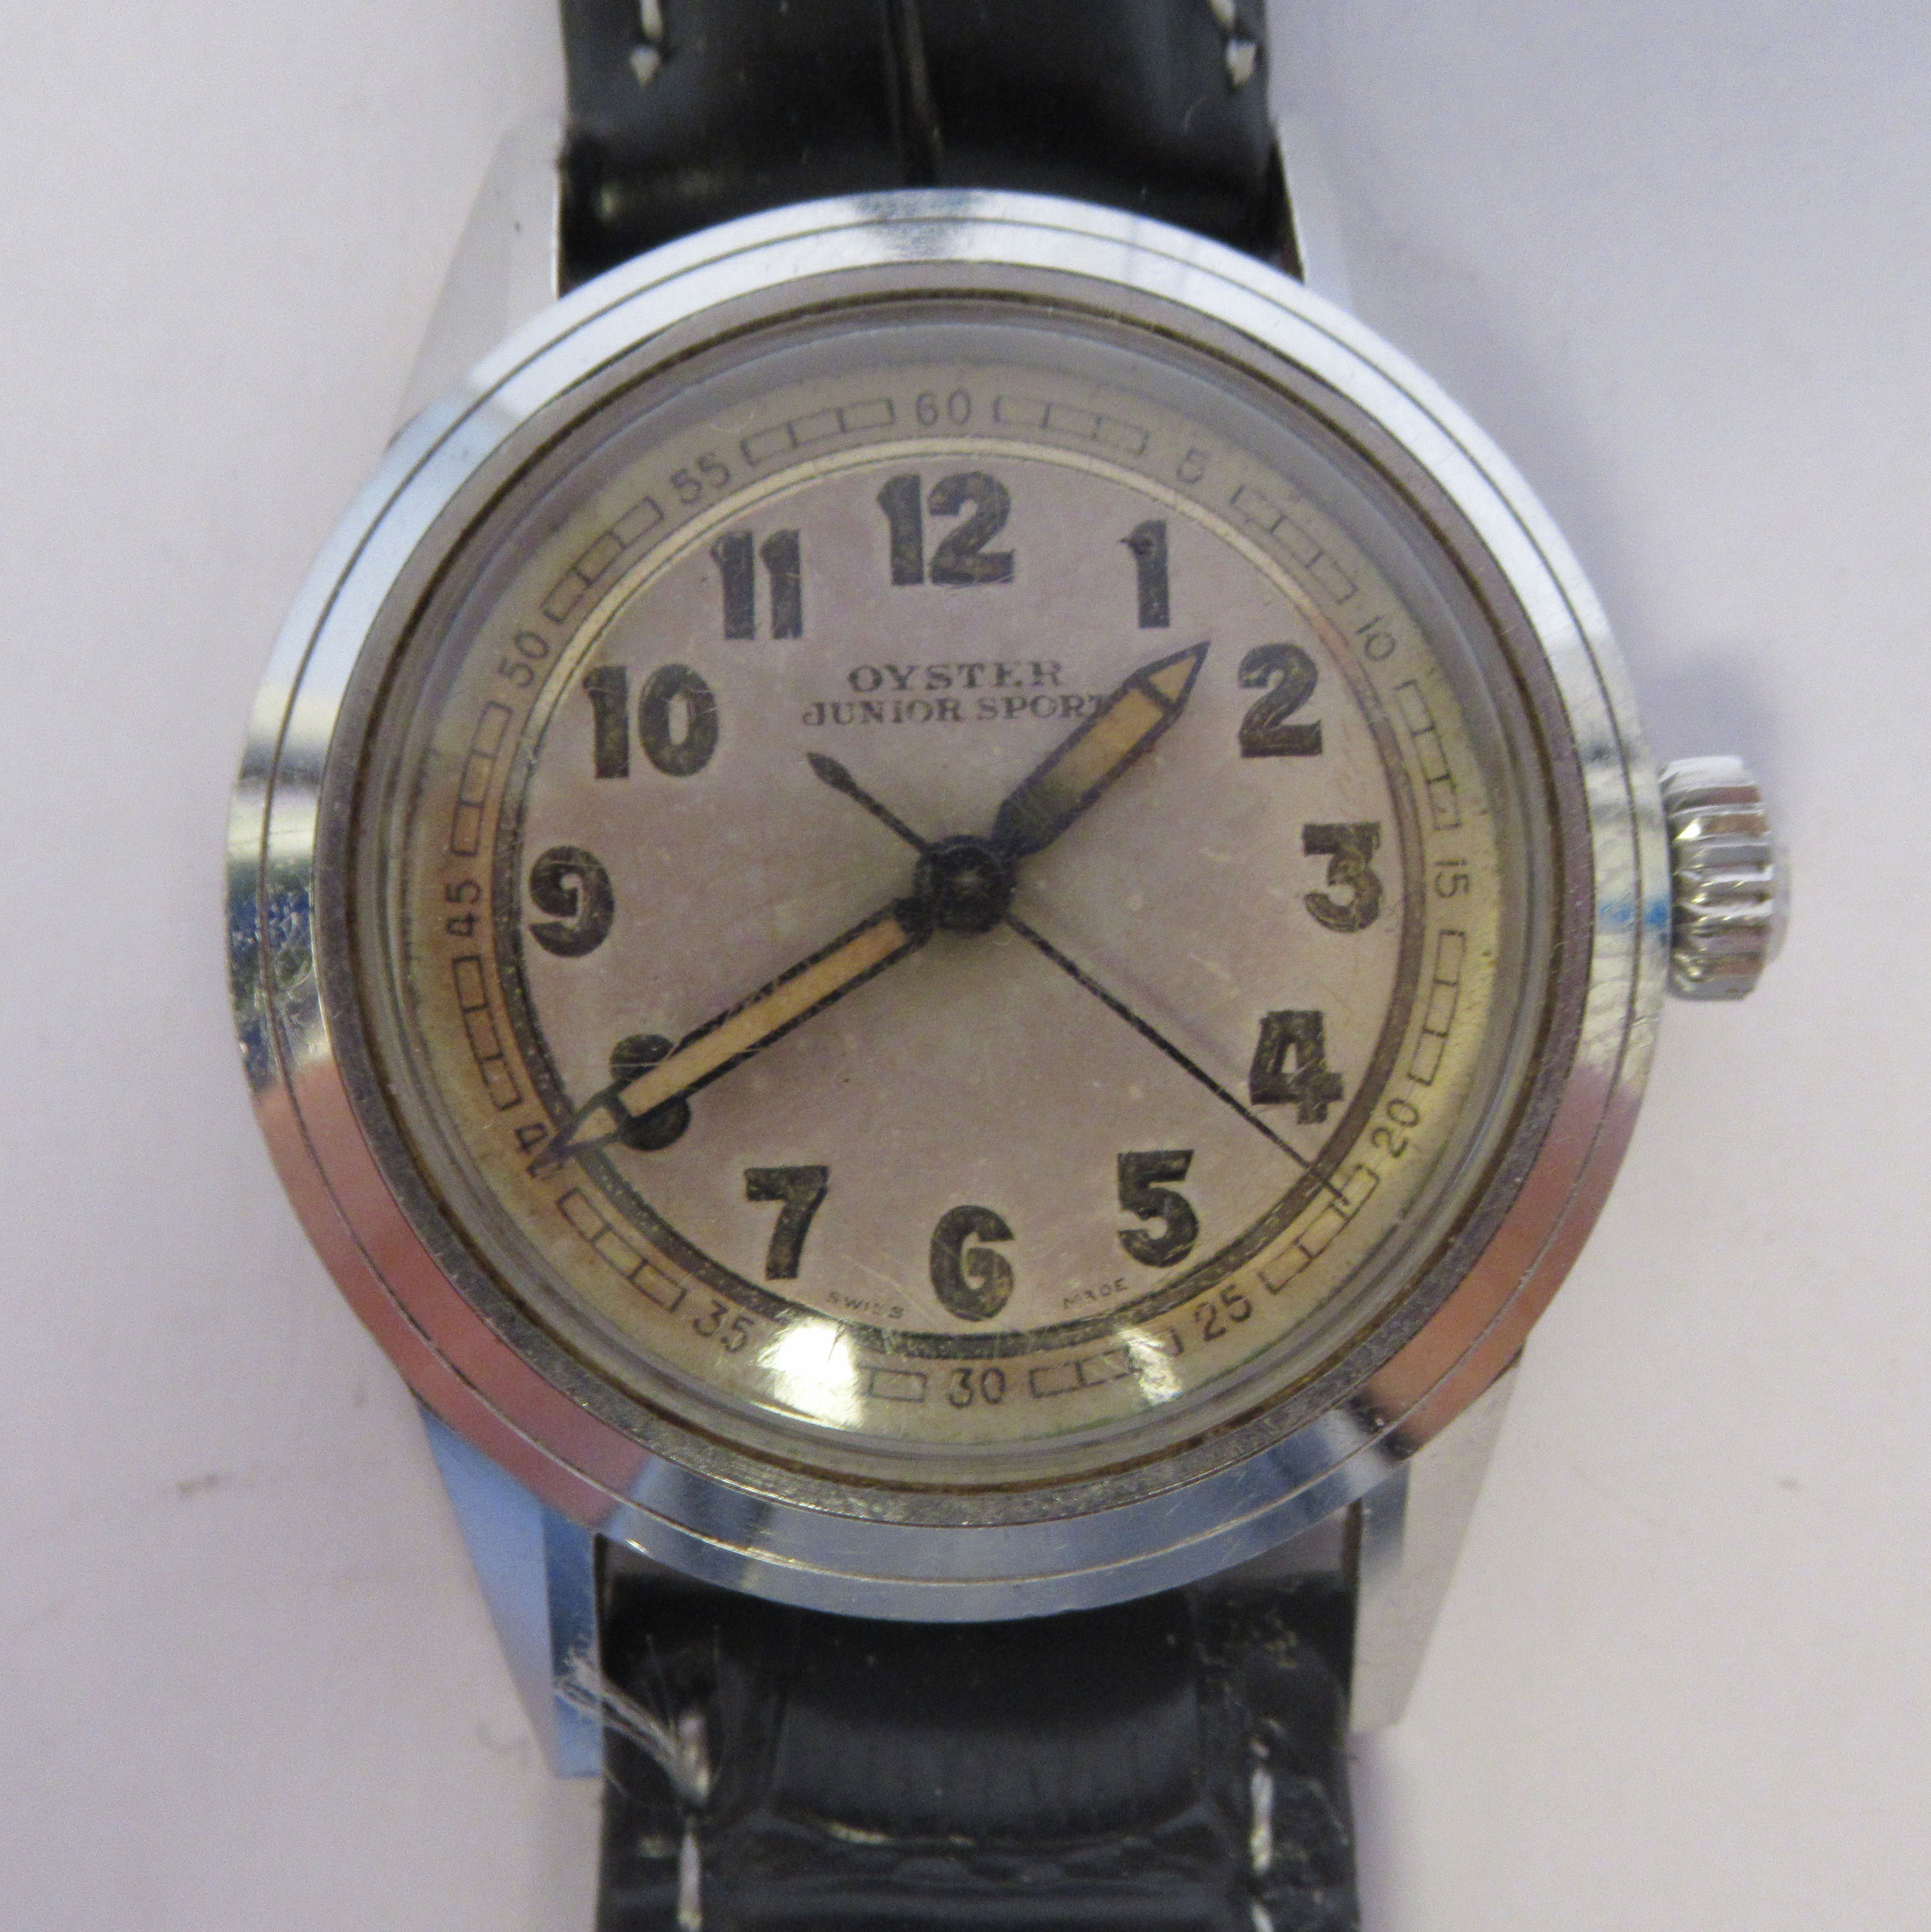 A 1940s boys Tudor Rolex Oyster Junior Sport stainless steel cased wristwatch, model 4454, the